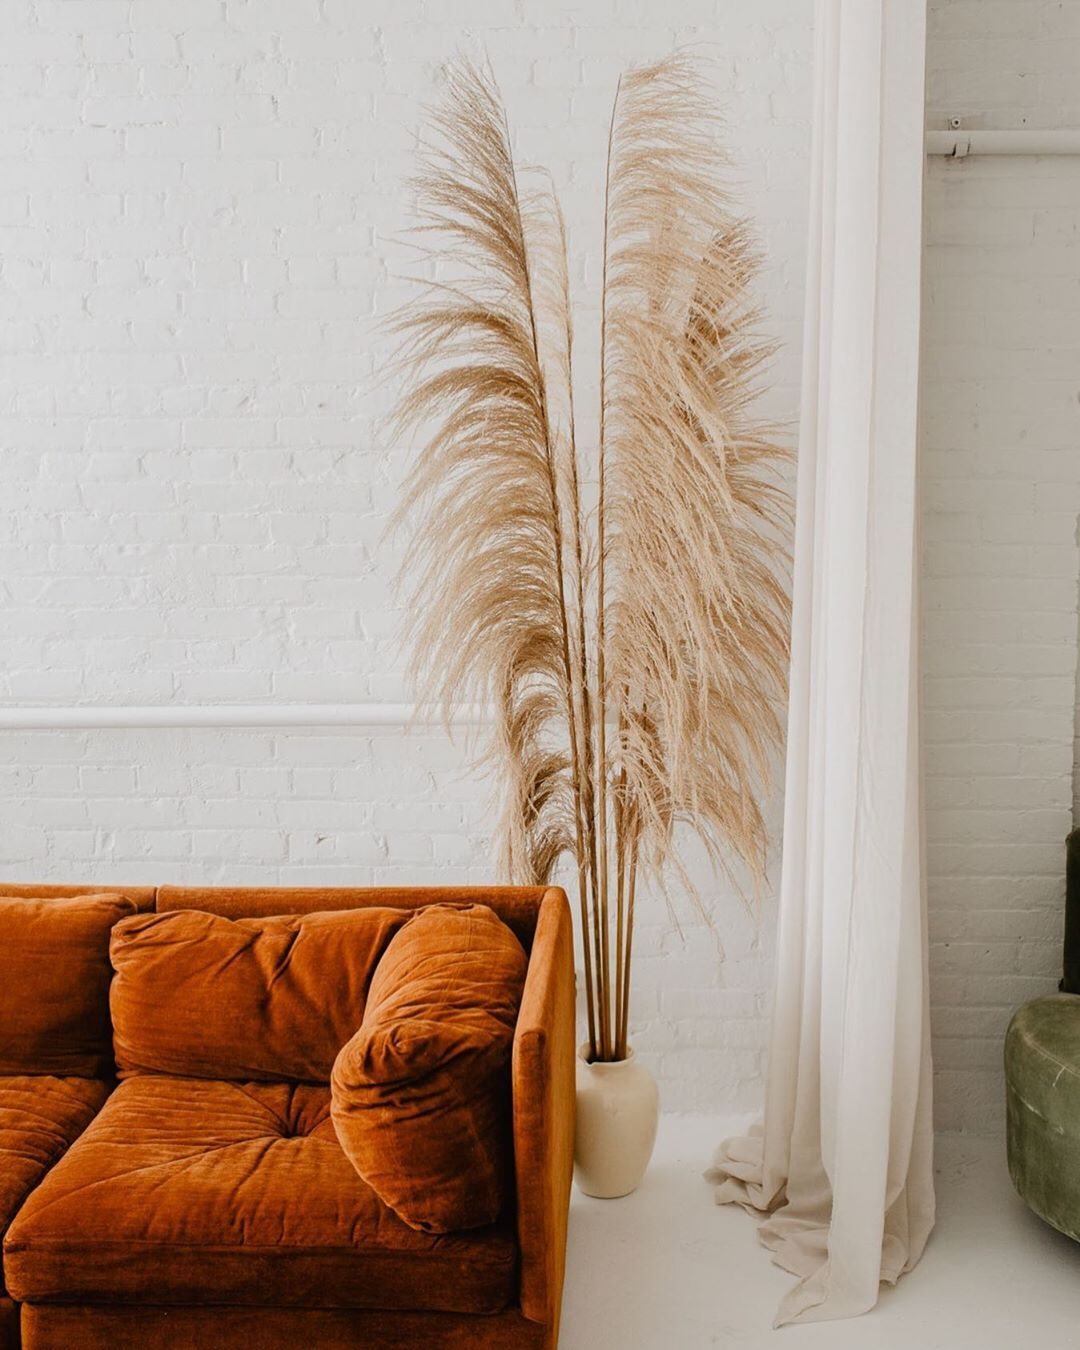 Burnt Orange Couch And Dried Pampas Grass